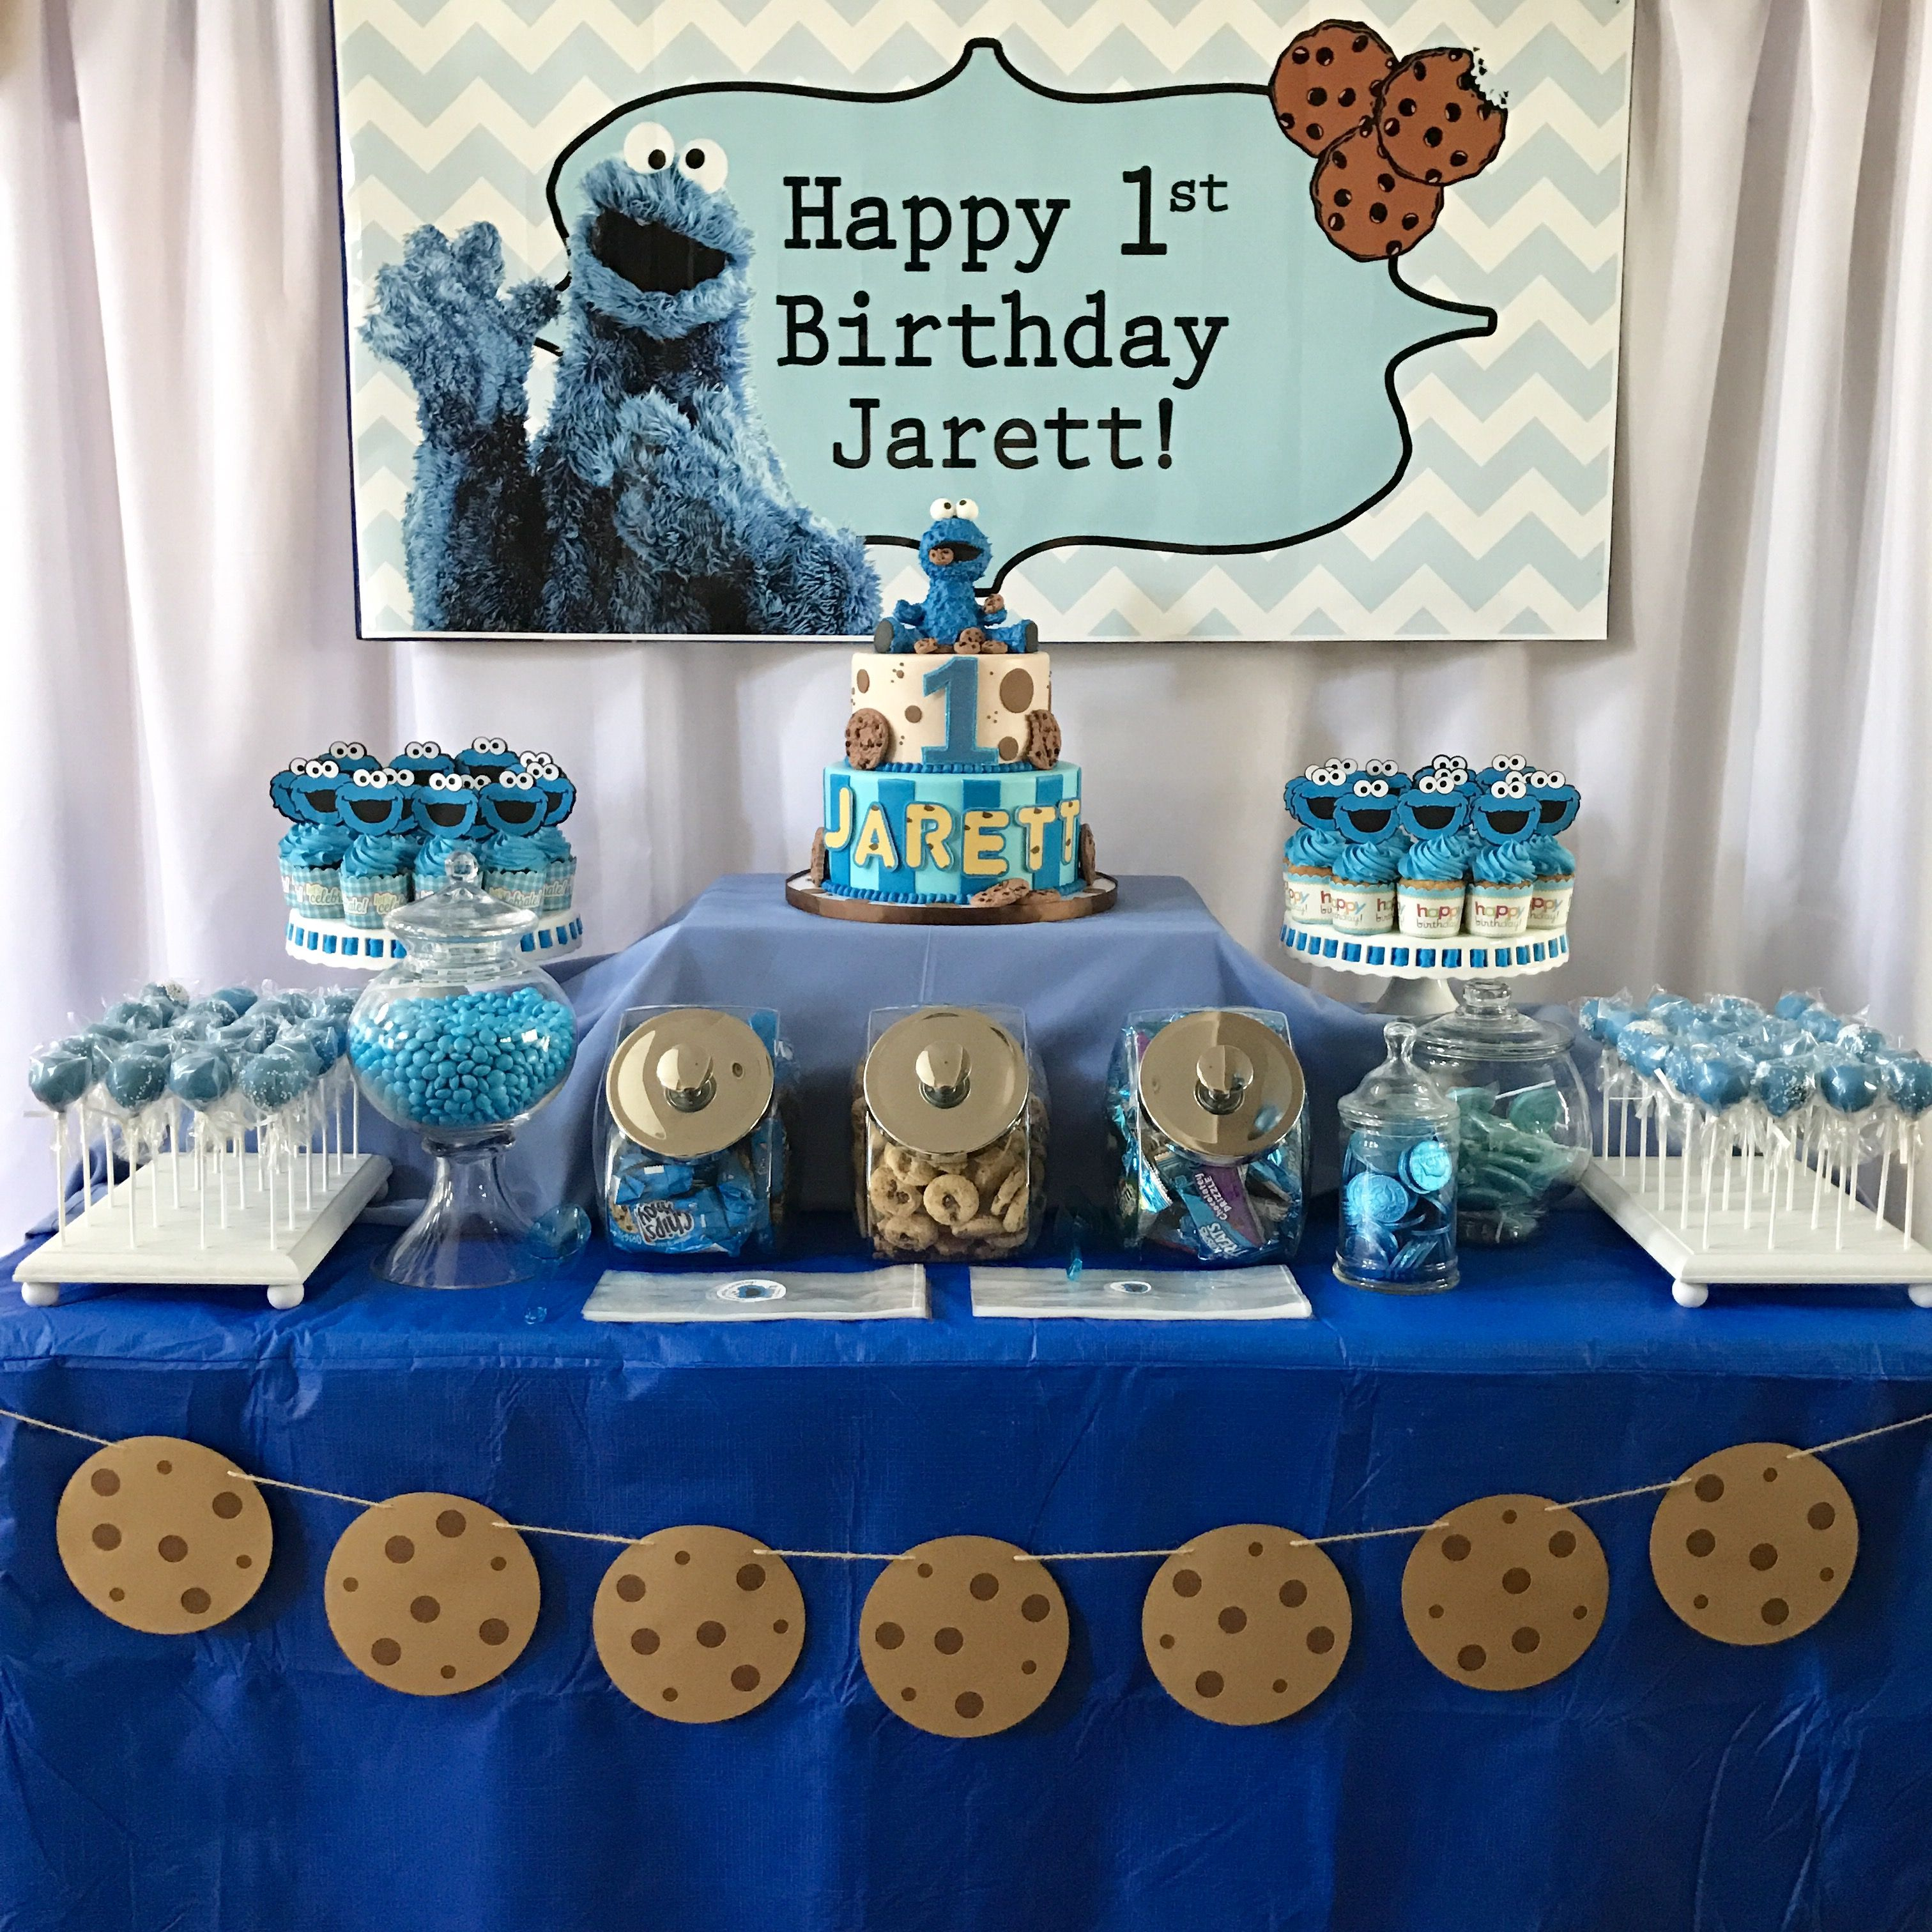 Cookie Monster Themed Dessert Table By Cyndetails Ig Cyndetails Cookiem Cookie Monster Birthday Party Cookie Monster Party Decorations Cookie Monster Party